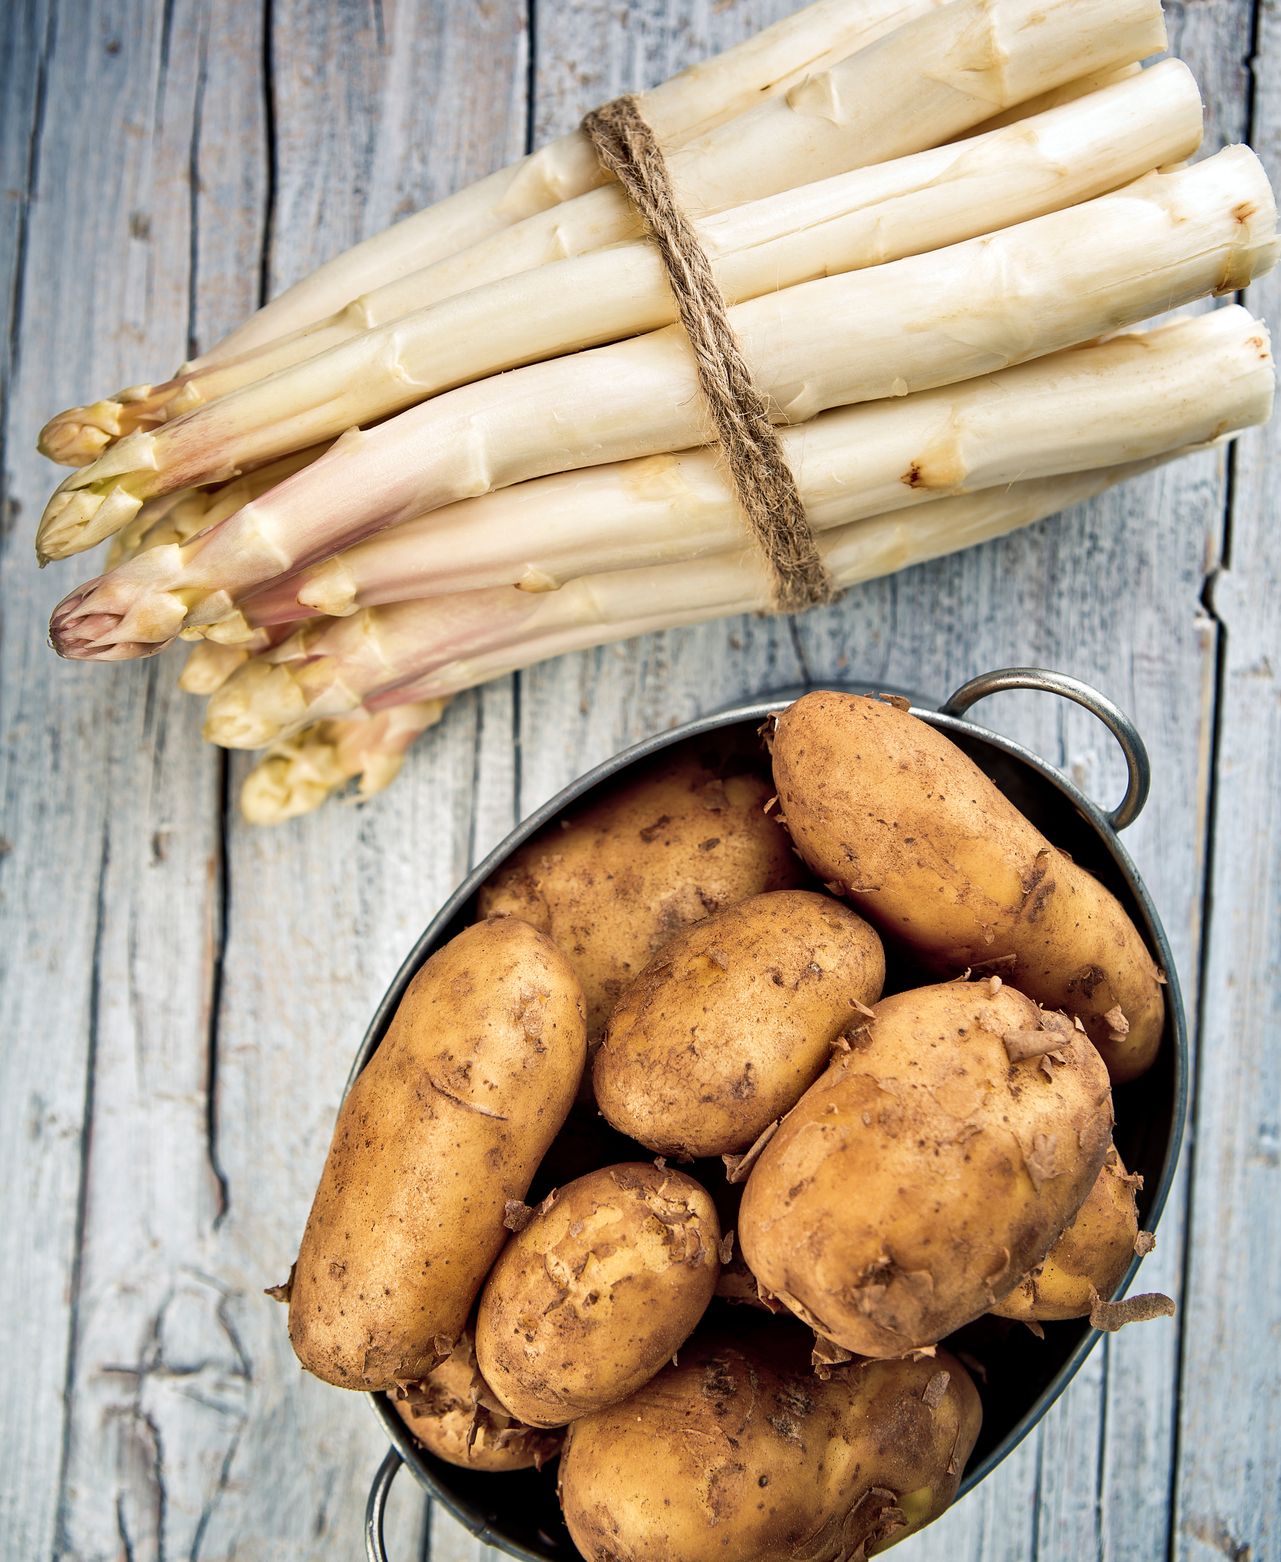 Bundle of Fresh unpeeled white Asparagus and Early Potatoes